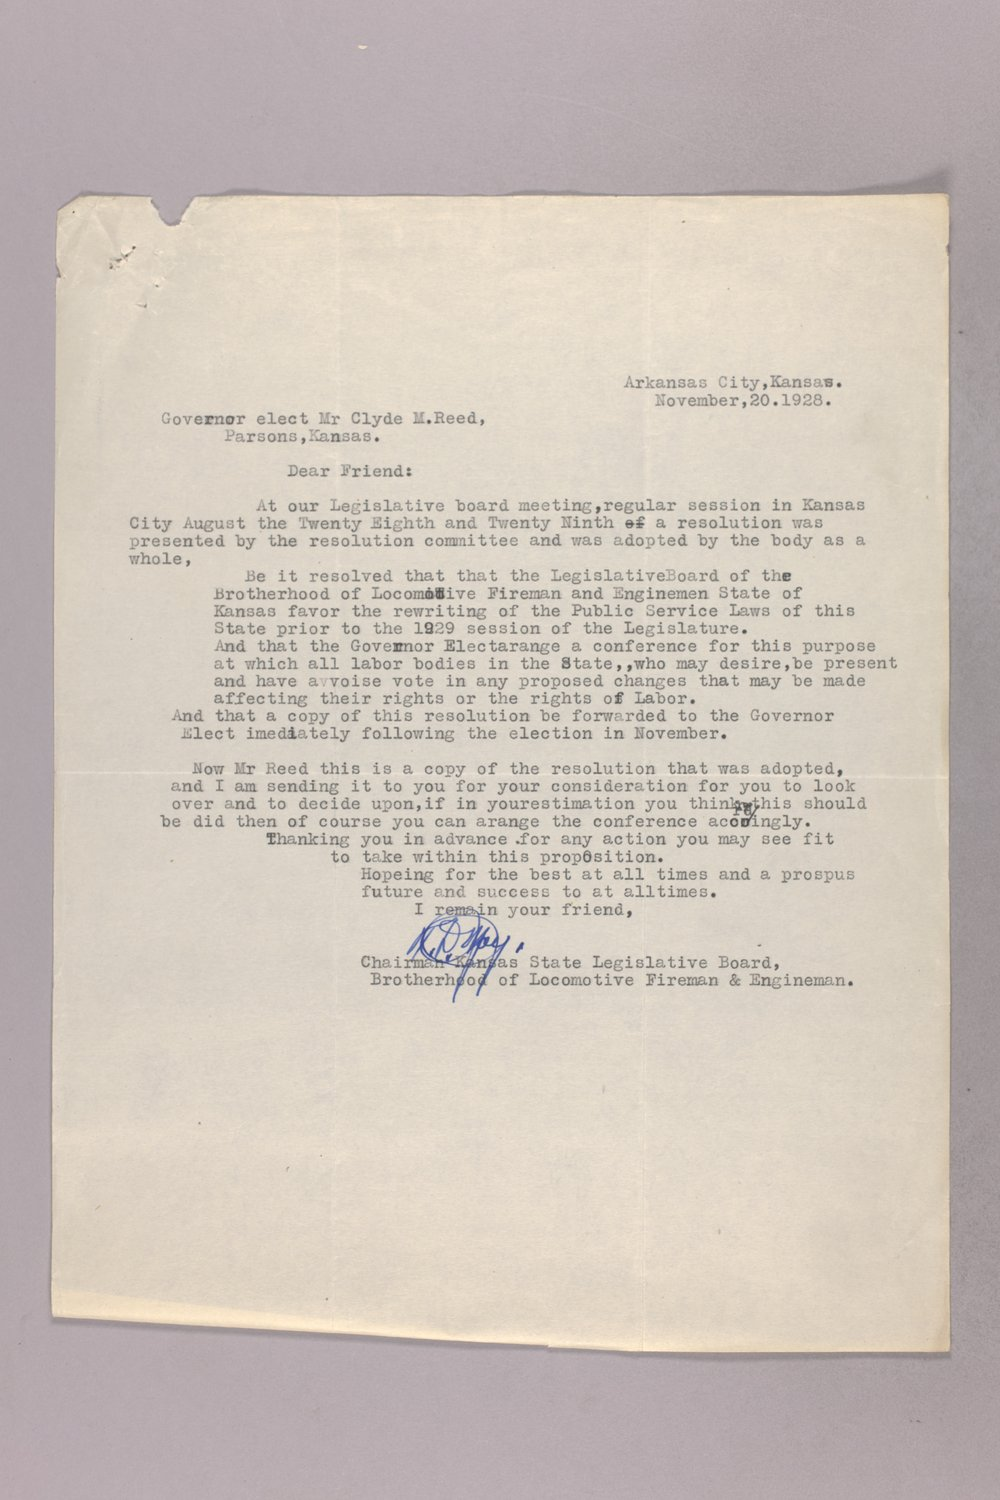 Governor Clyde M. Reed correspondence, Public Service Commission - 5